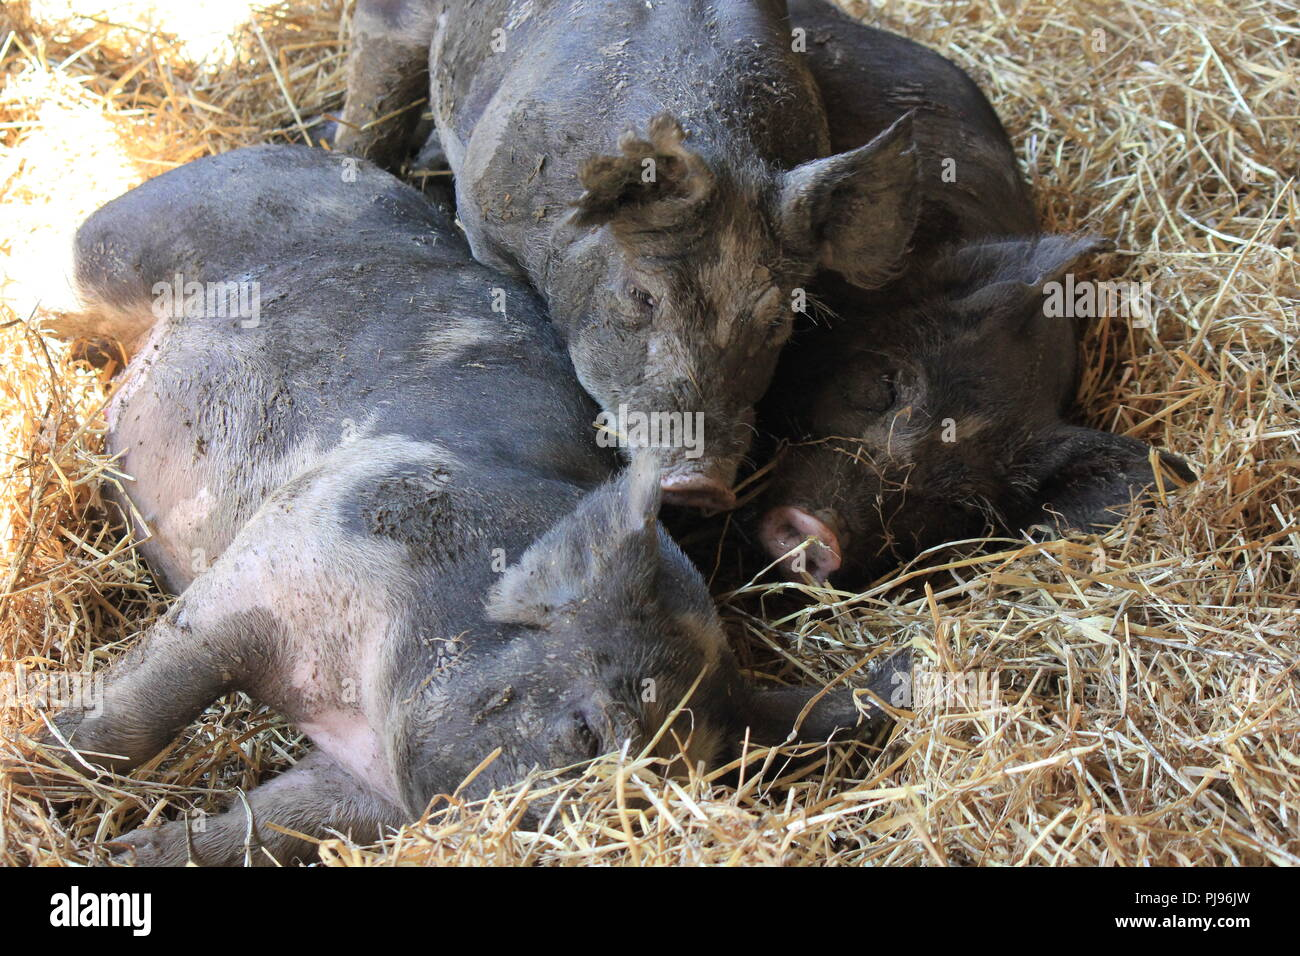 Pigs sleeping in their pigpen at Wagner Farm in Glenview, Illinois on a hot sunny summer day. - Stock Image